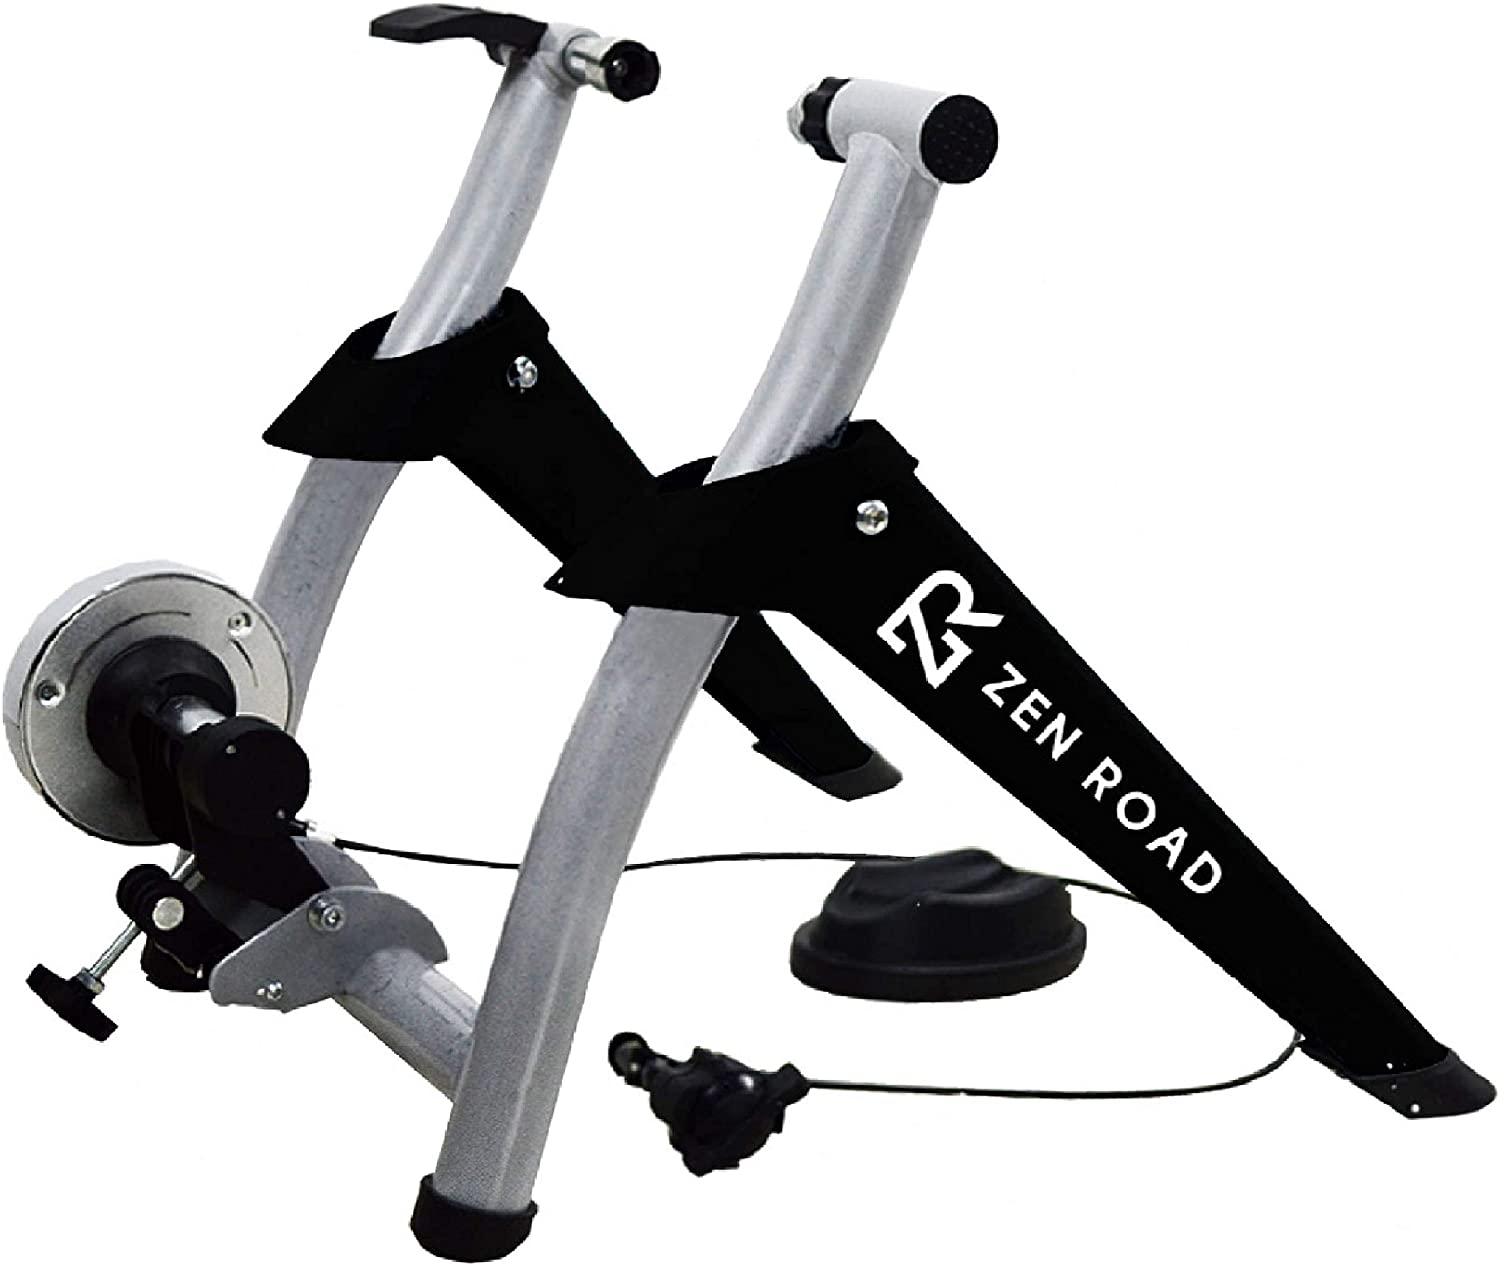 ZenRoad Stationary Bike Trainer Stand - Magnetic Bicycle Trainer Roller with 6-Speed Level Adjustment - Road and Mountain Bike Riding Trainer - Quiet Cycle Holder for Indoor Bike Training Exercise